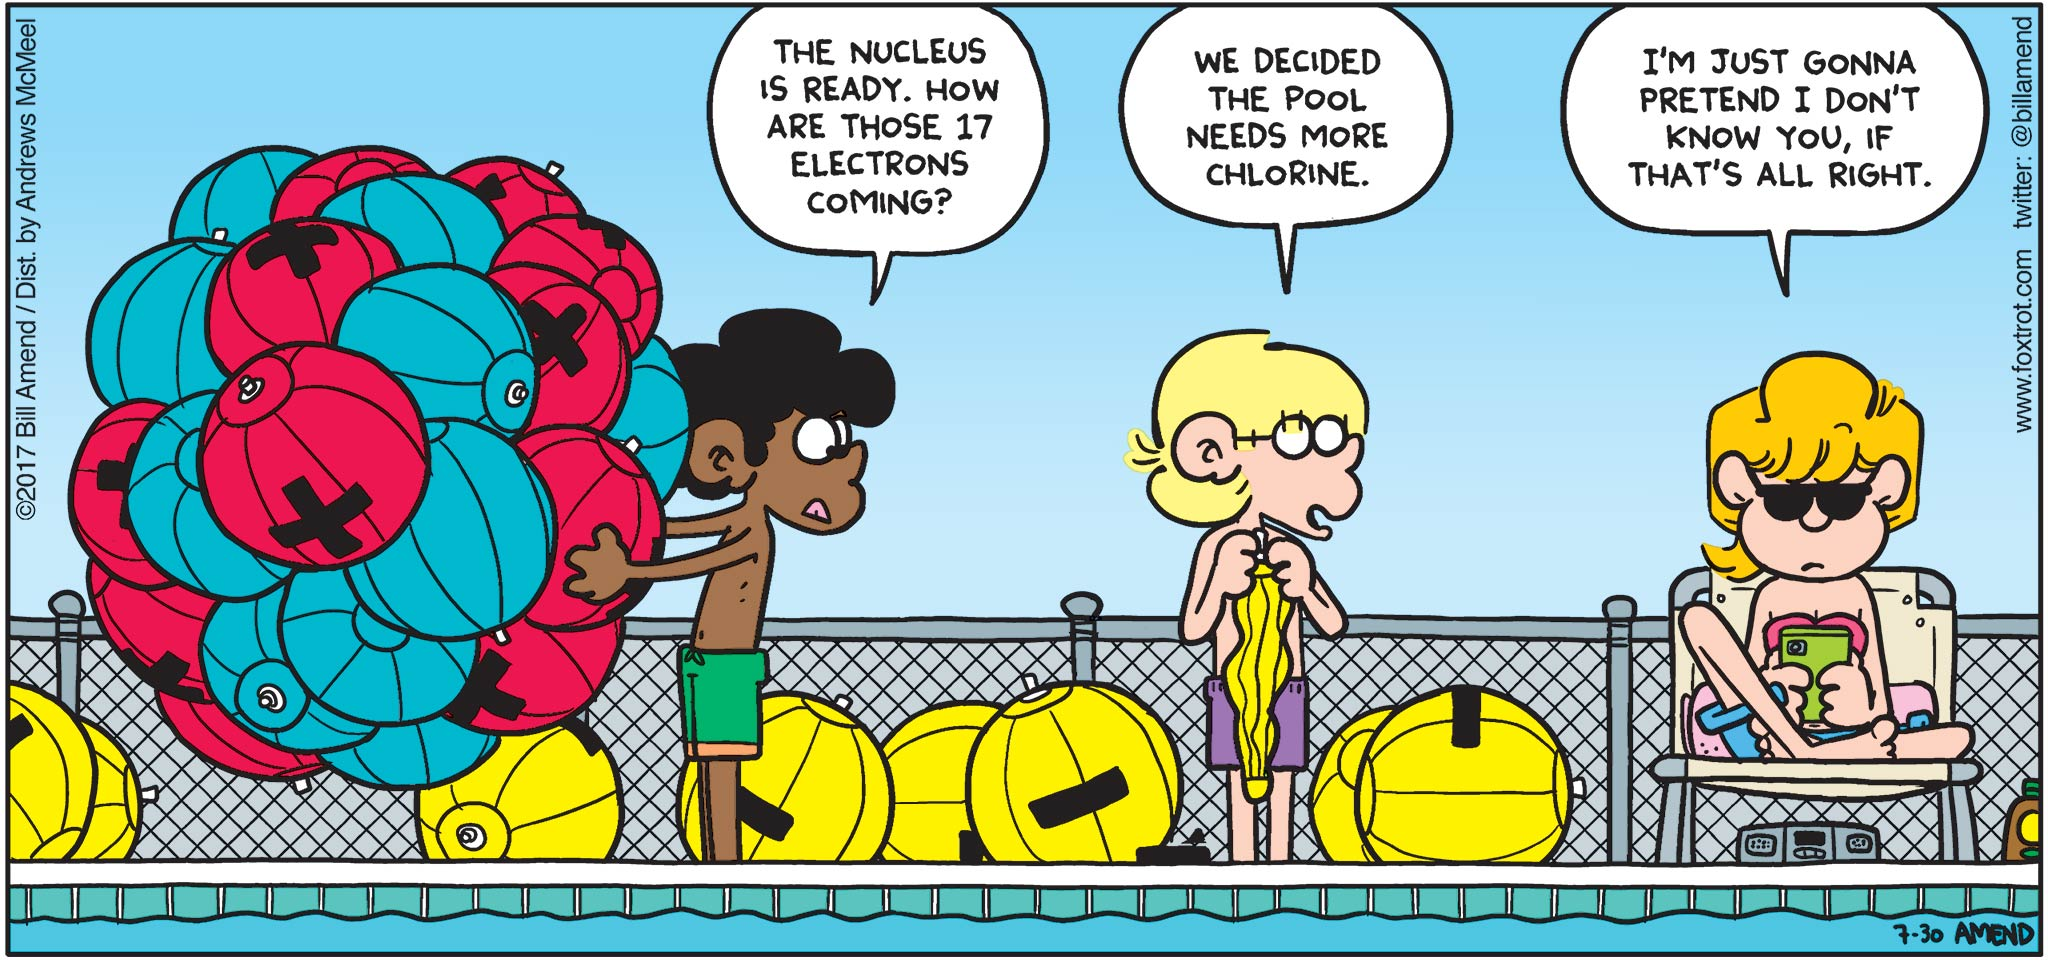 """FoxTrot by Bill Amend - """"Pool Chemistry?"""" published July 30, 2017 - Marcus says: The nucleus is ready. How are those 17 electrons coming? Jason says: We decided the pool needs more chlorine. Paige says: I'm just gonna pretend I don't know you, if that's alright."""